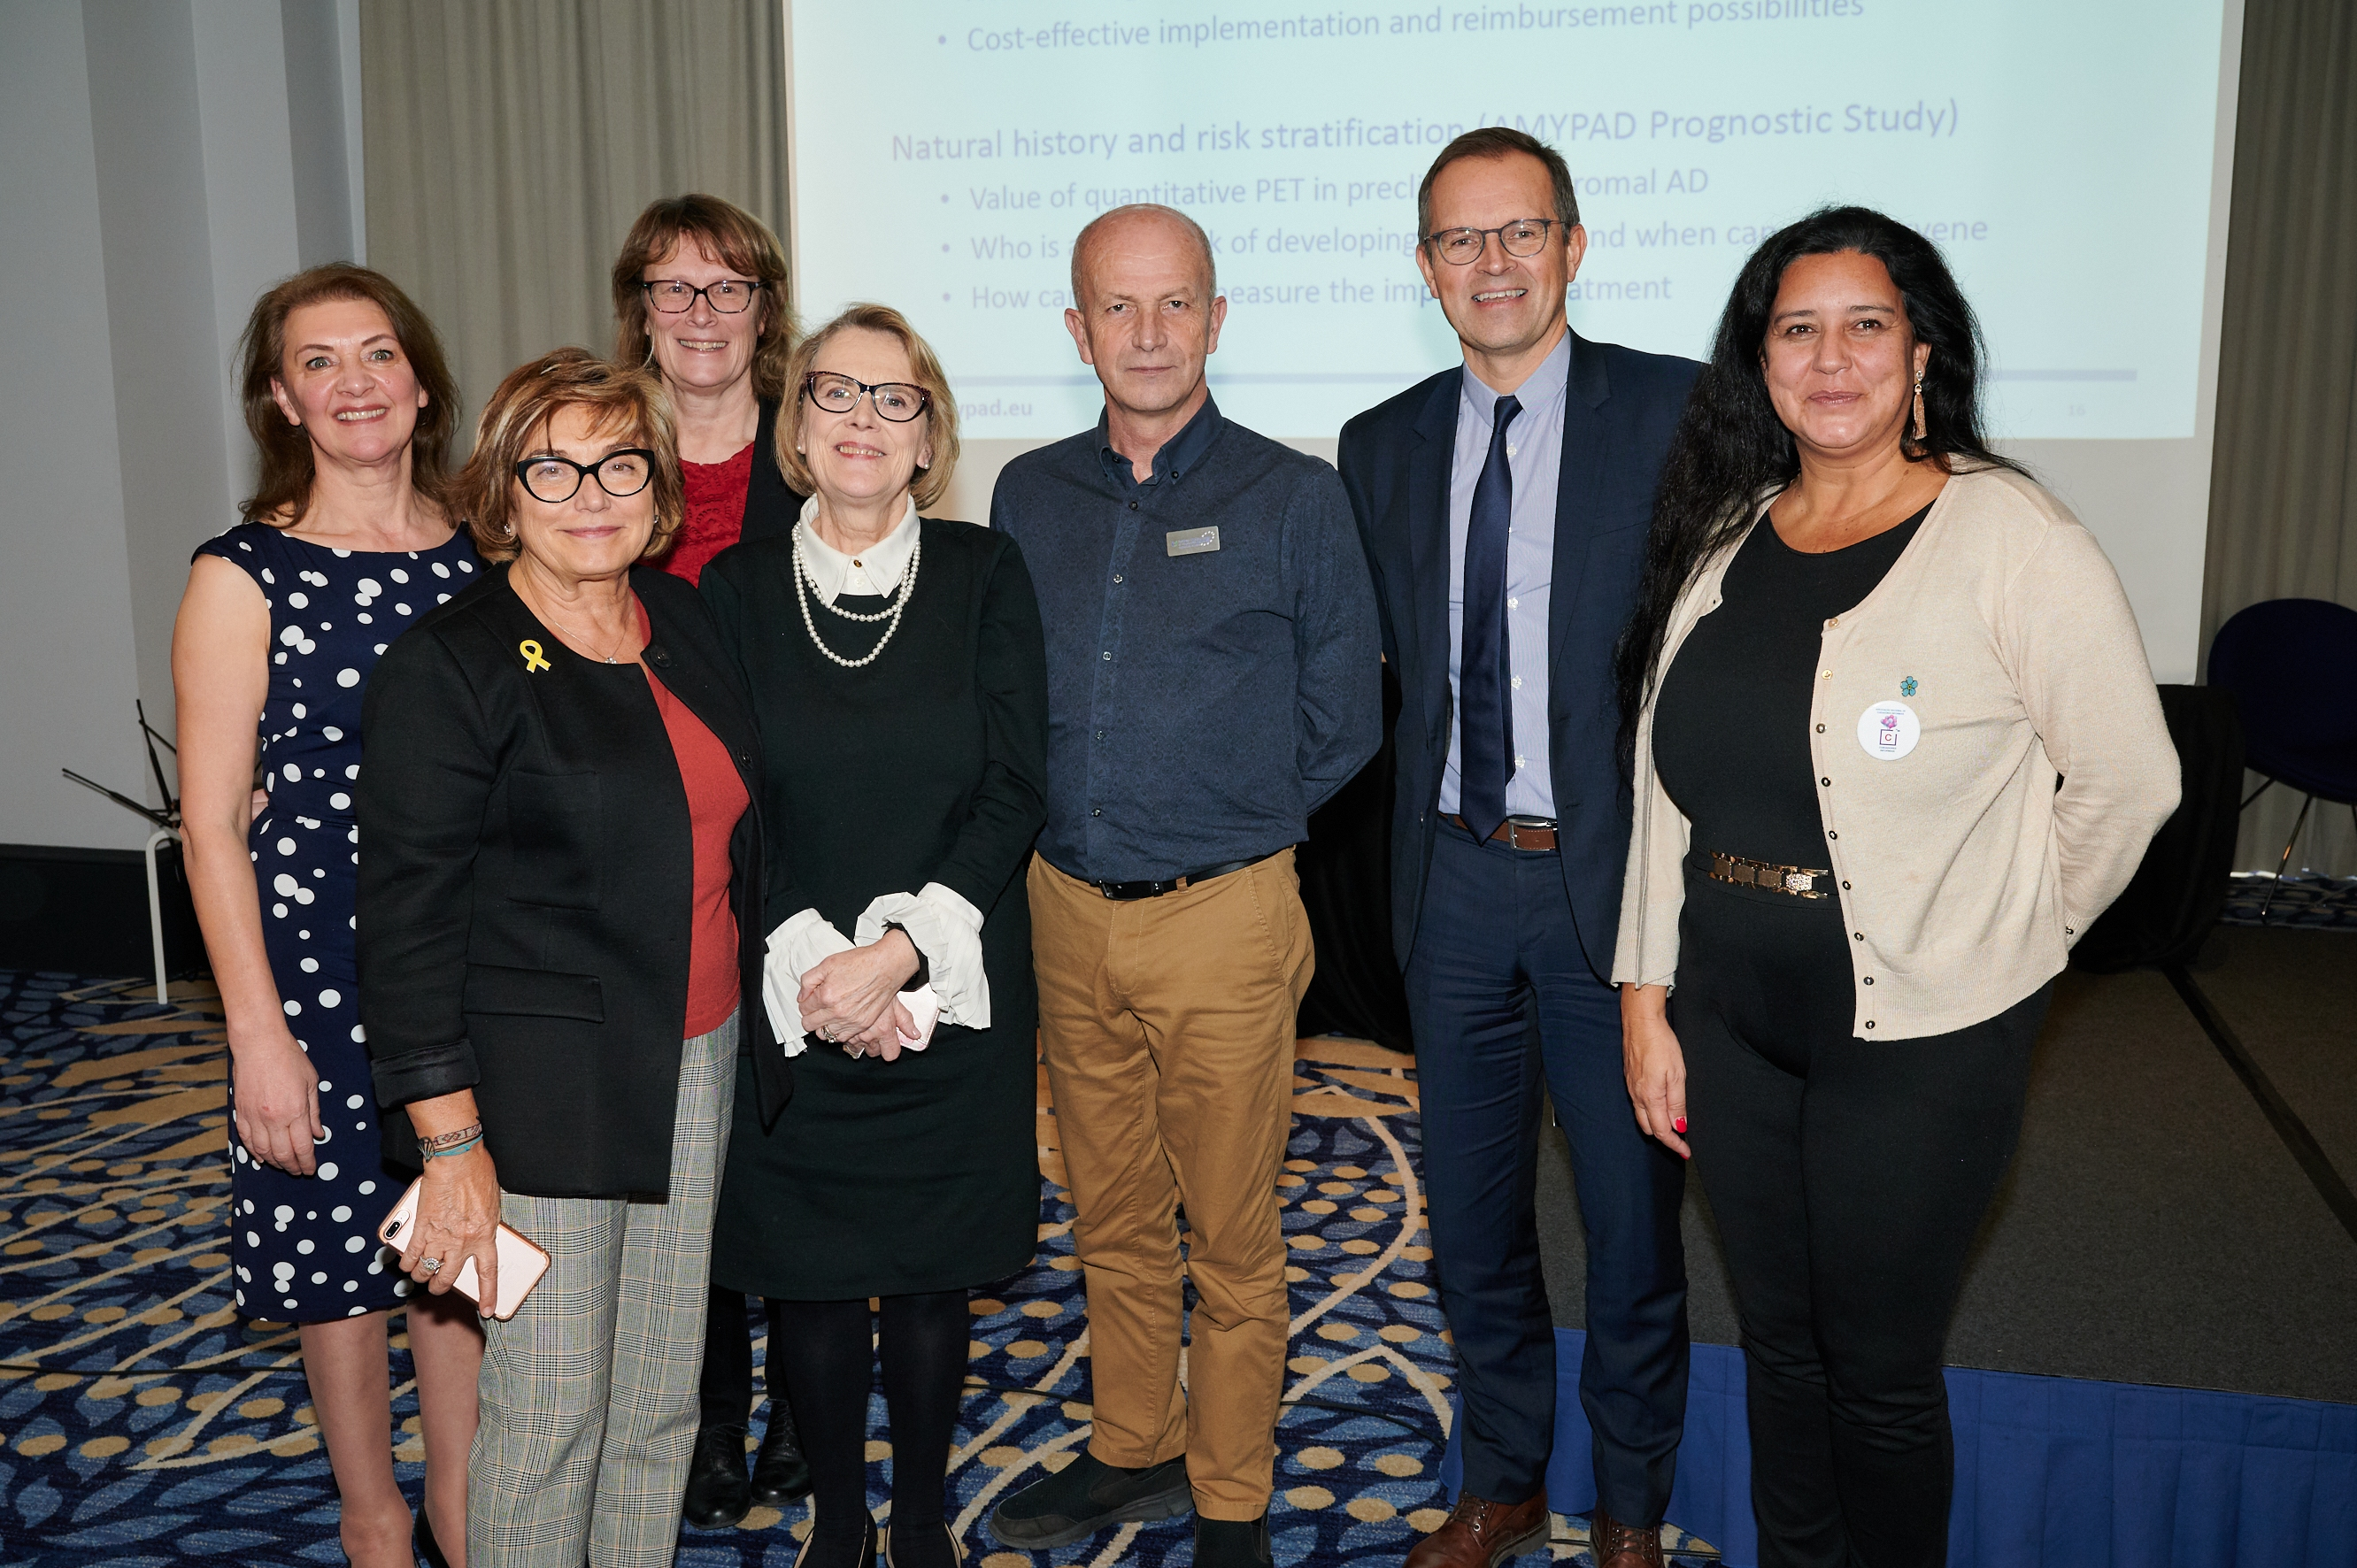 Presentations at Alzheimer Europe Lunch Debate, People pictured from left to right, Jayne Goodrick, Mercè Boada (presenter), Gill Farrar (presenter), Helen Rochford-Brennan, Chris Roberts, Pierre Krolak-Salmon (presenter), Nélida Aguiar